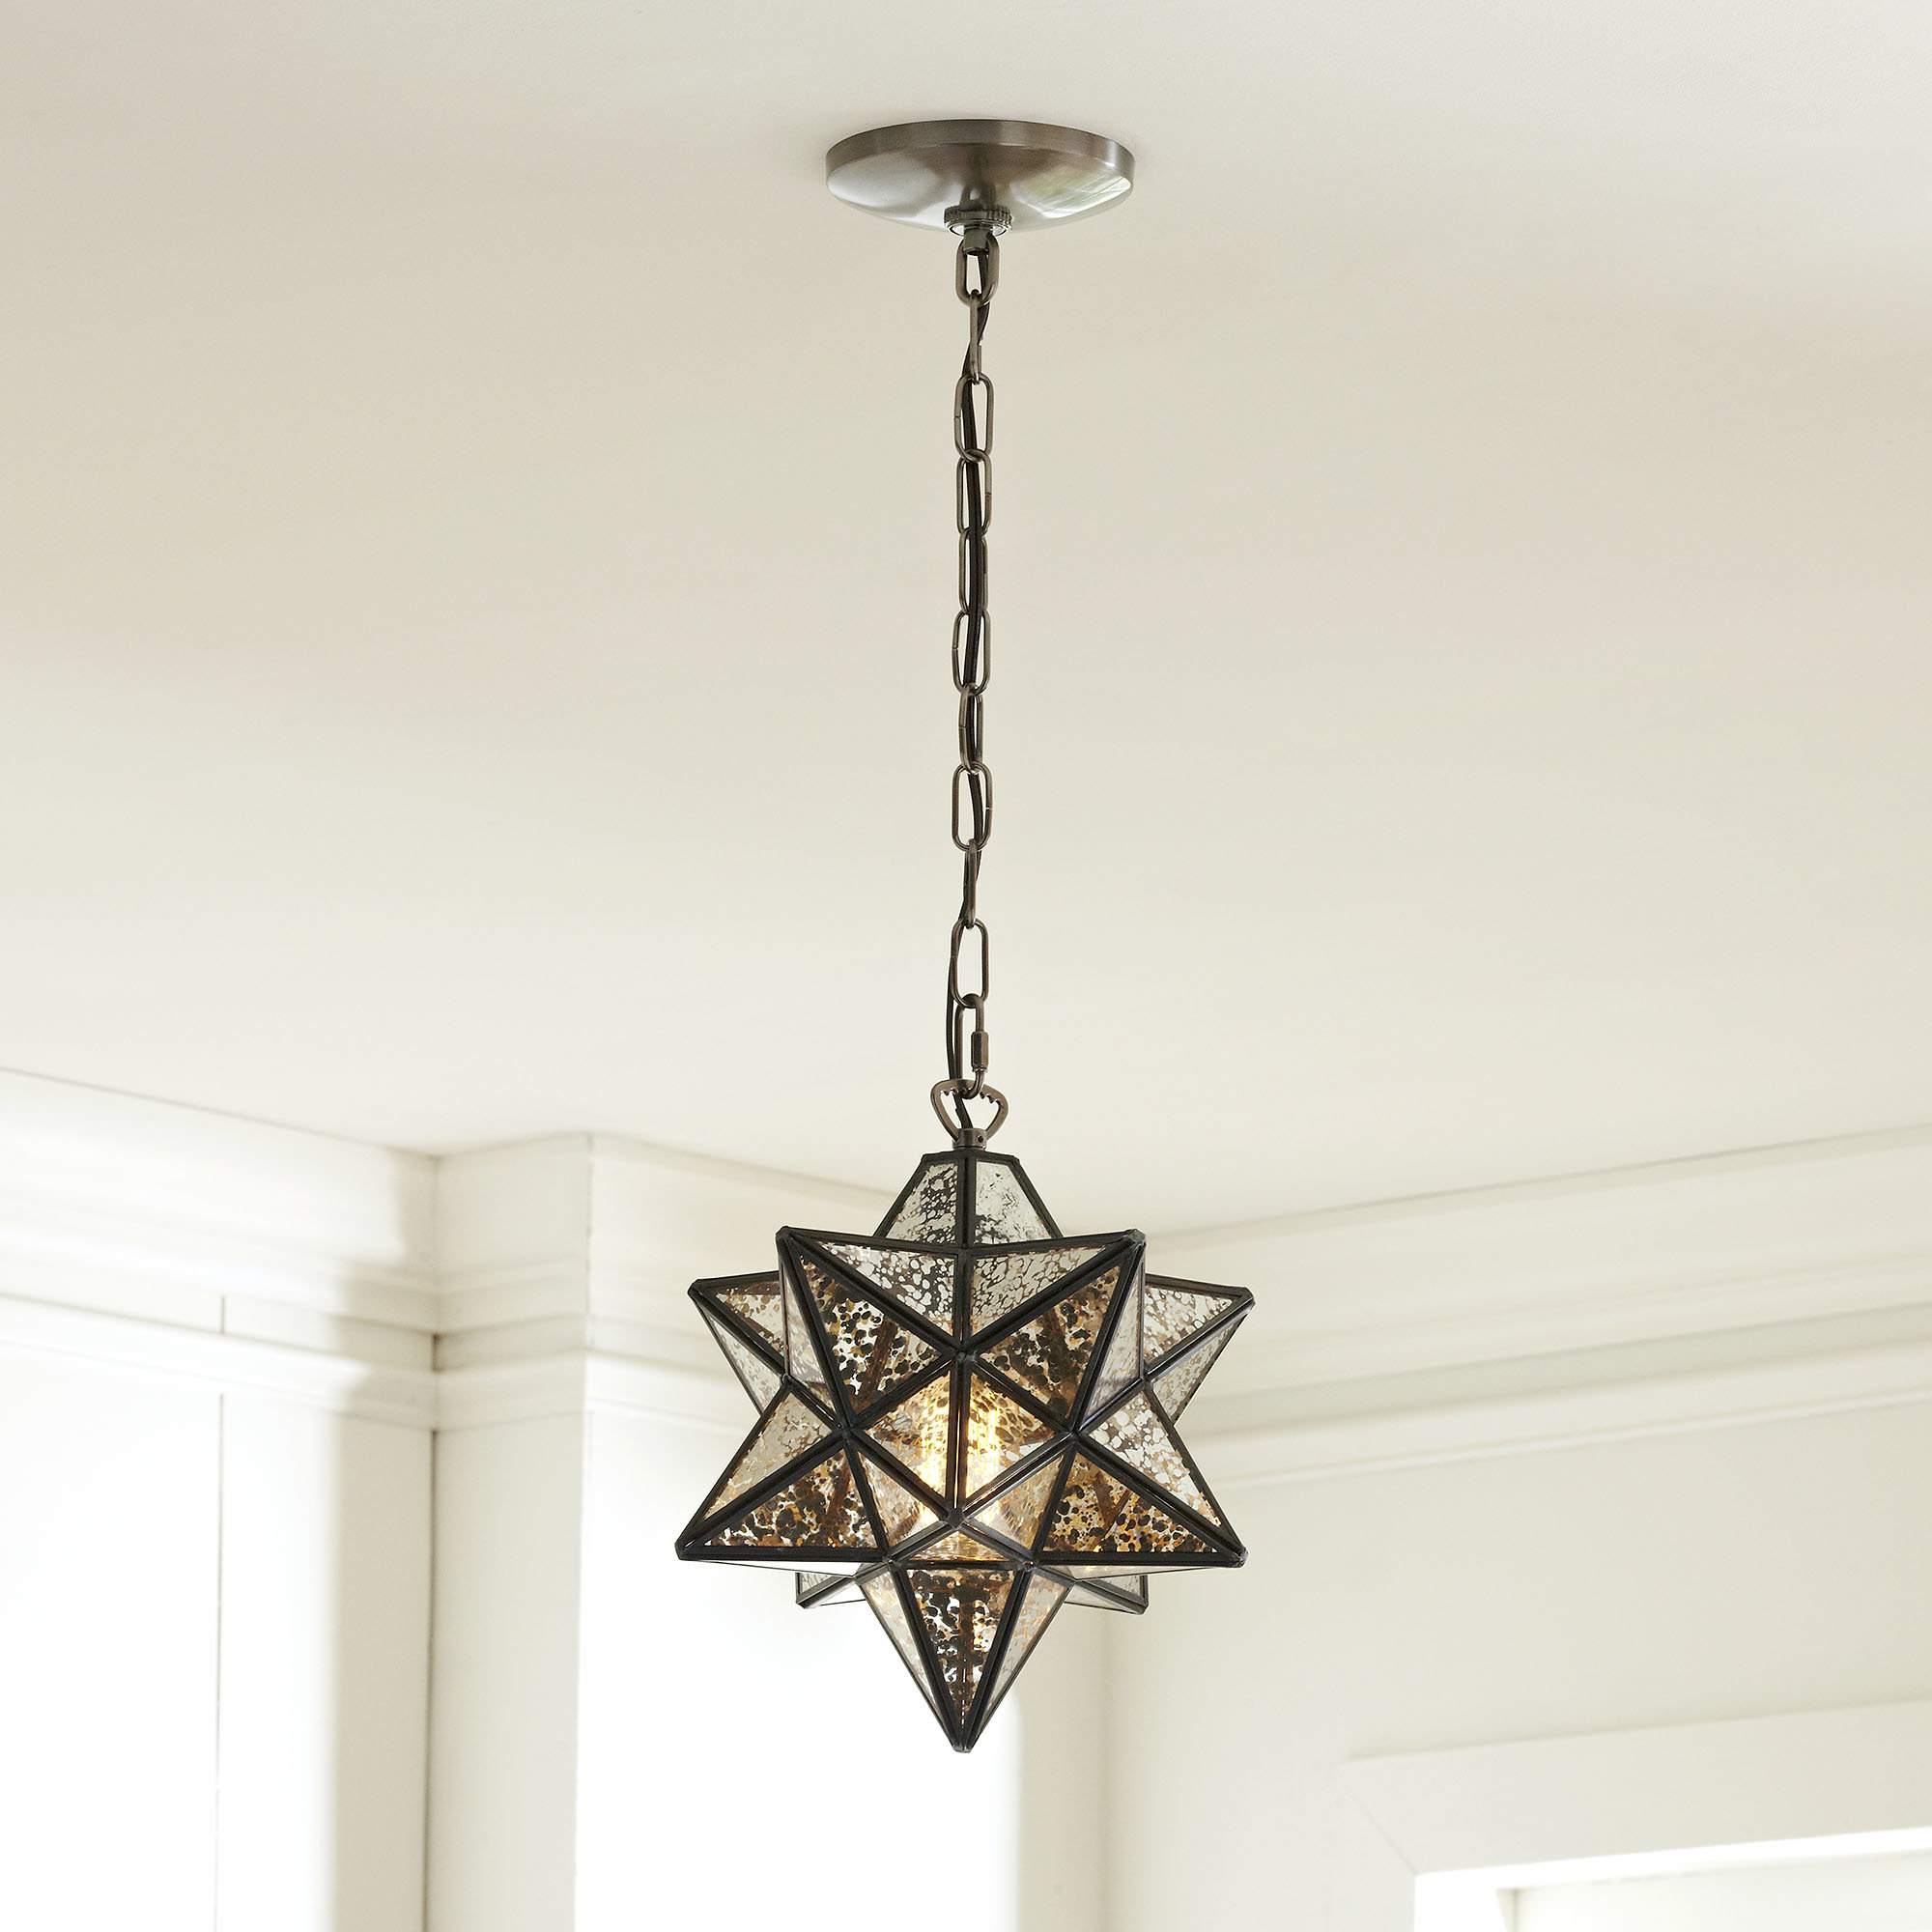 1 Light Single Star Pendants Intended For Famous 1 Light Single Star Pendant (Gallery 9 of 20)